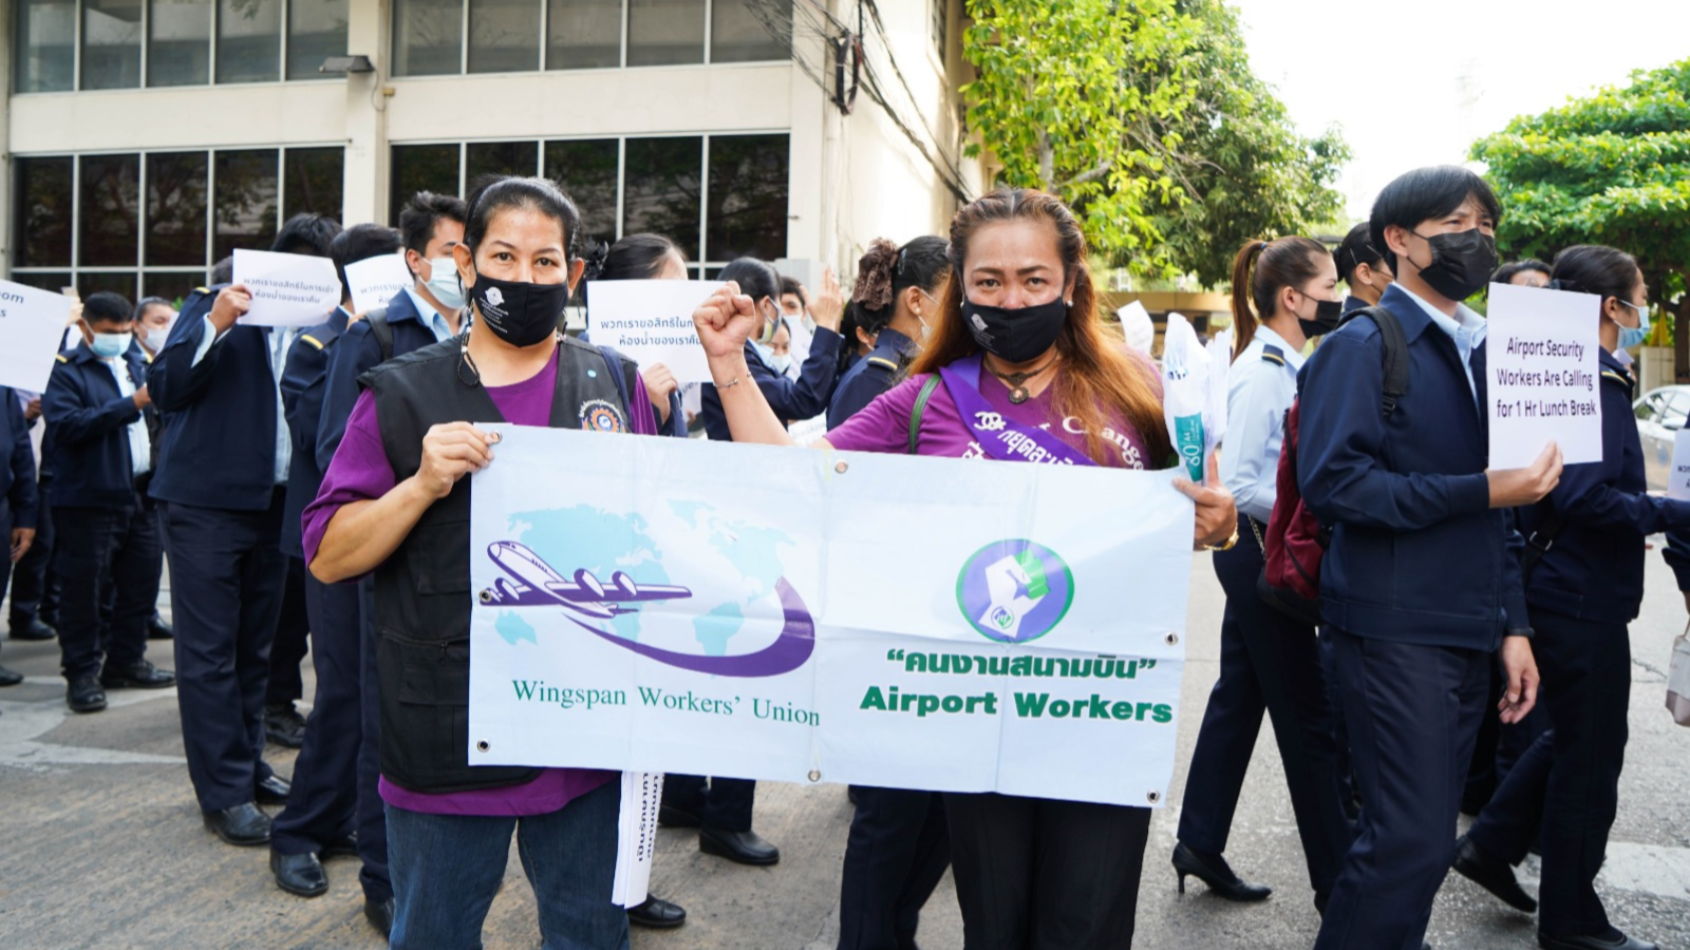 Bangkok's airport workers still waiting on rights